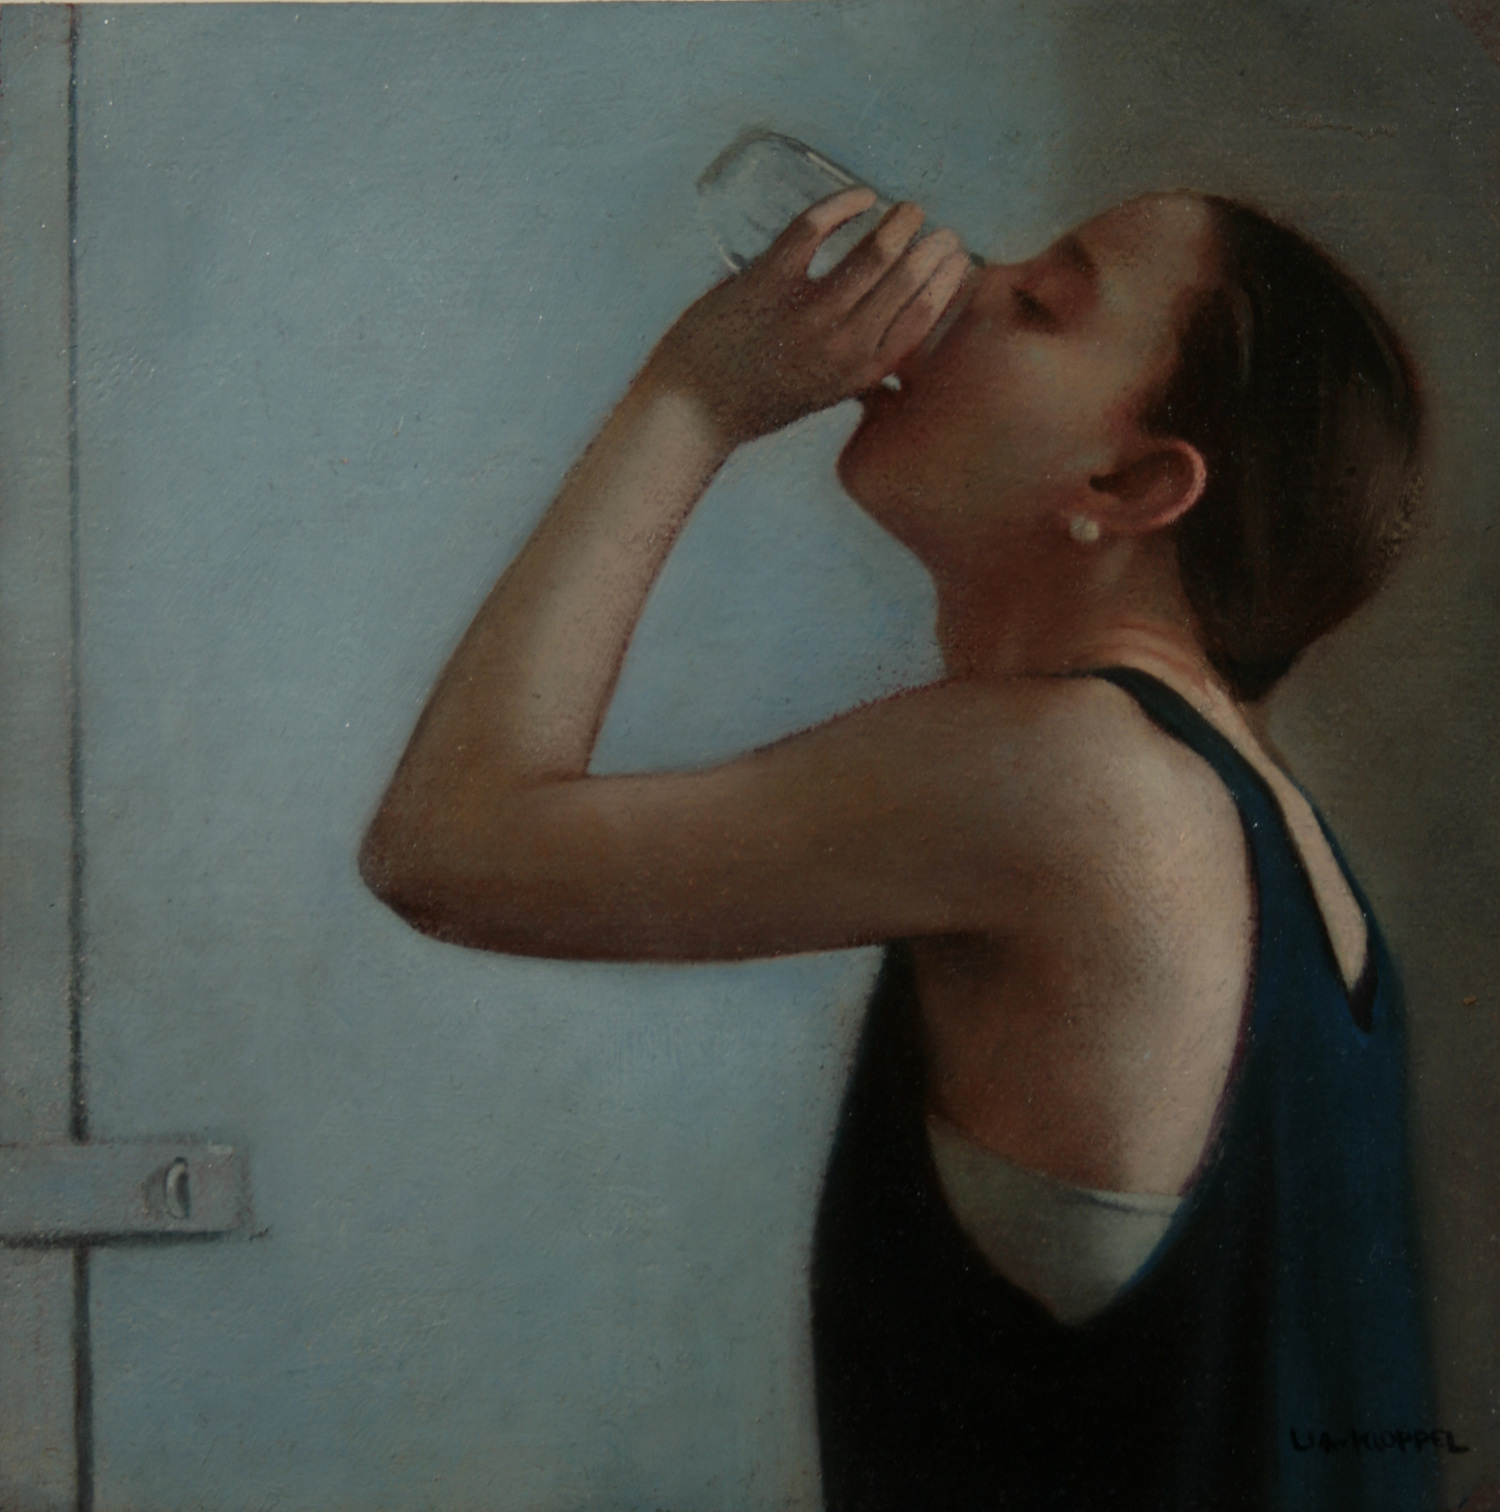 Drink,  2007, Oil on linen, 9 x 9 inches, Private collection